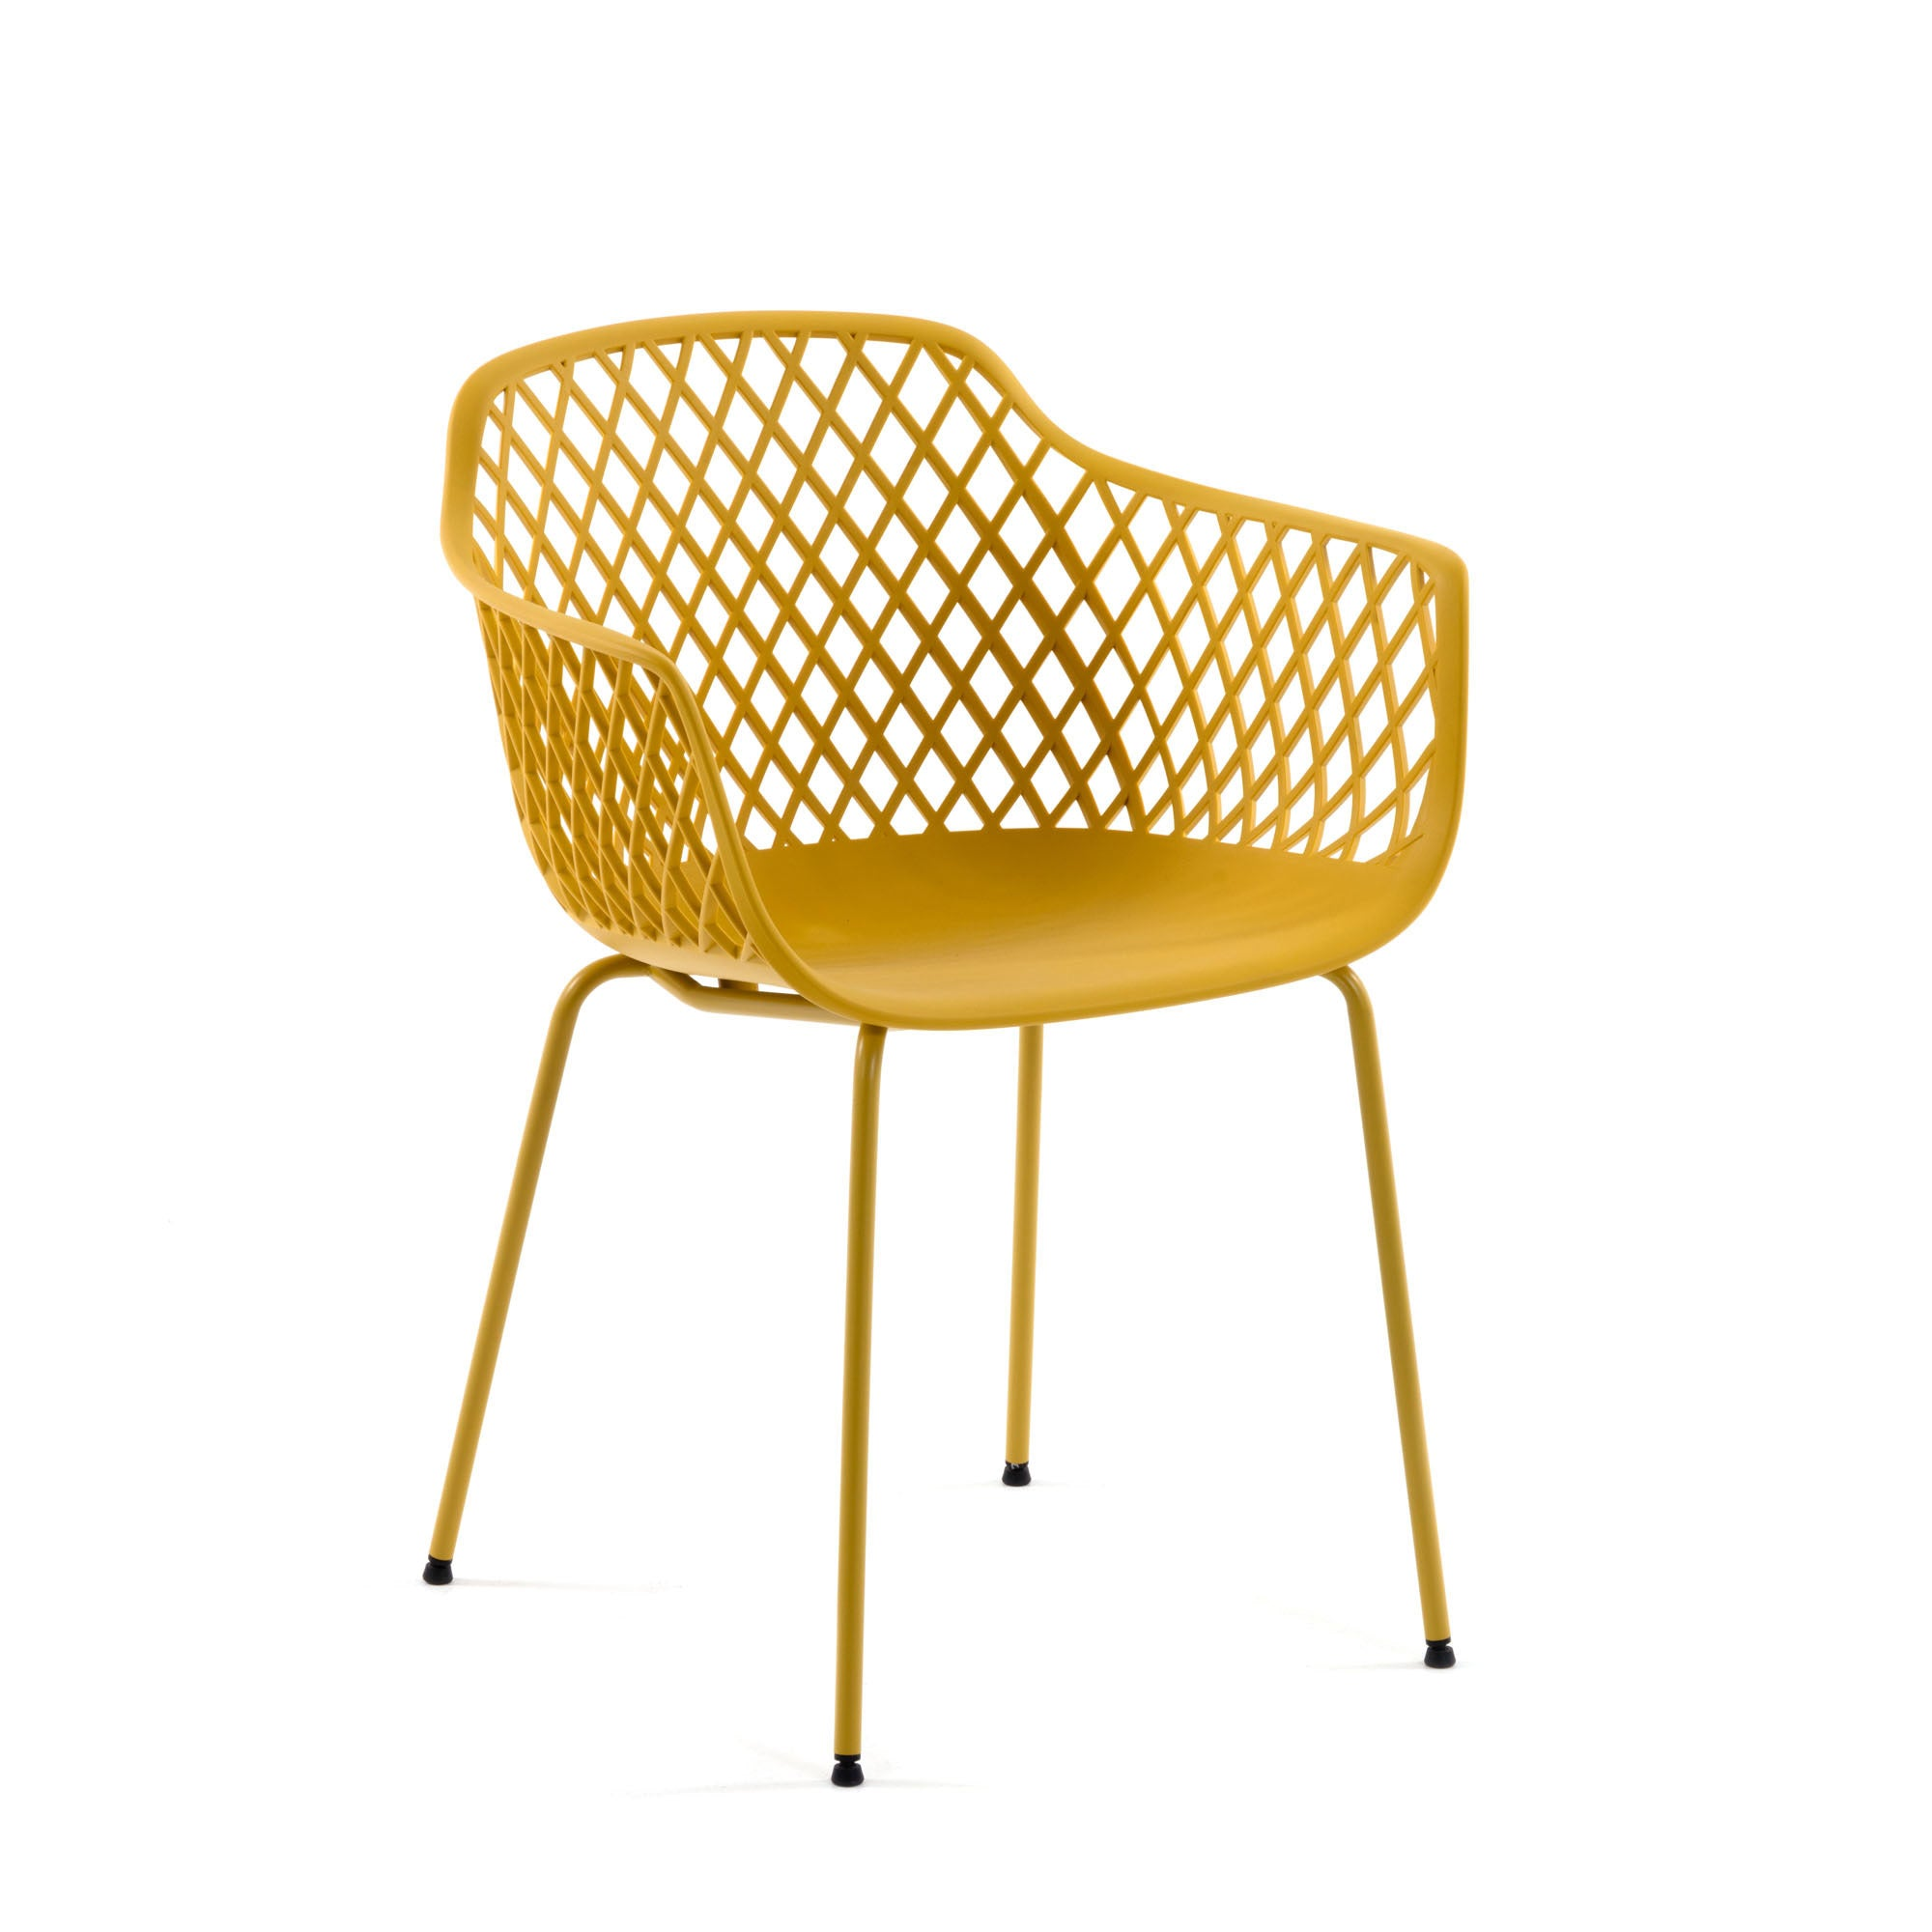 Timoi Yellow Chair, Chair - Home-Buy Interiors